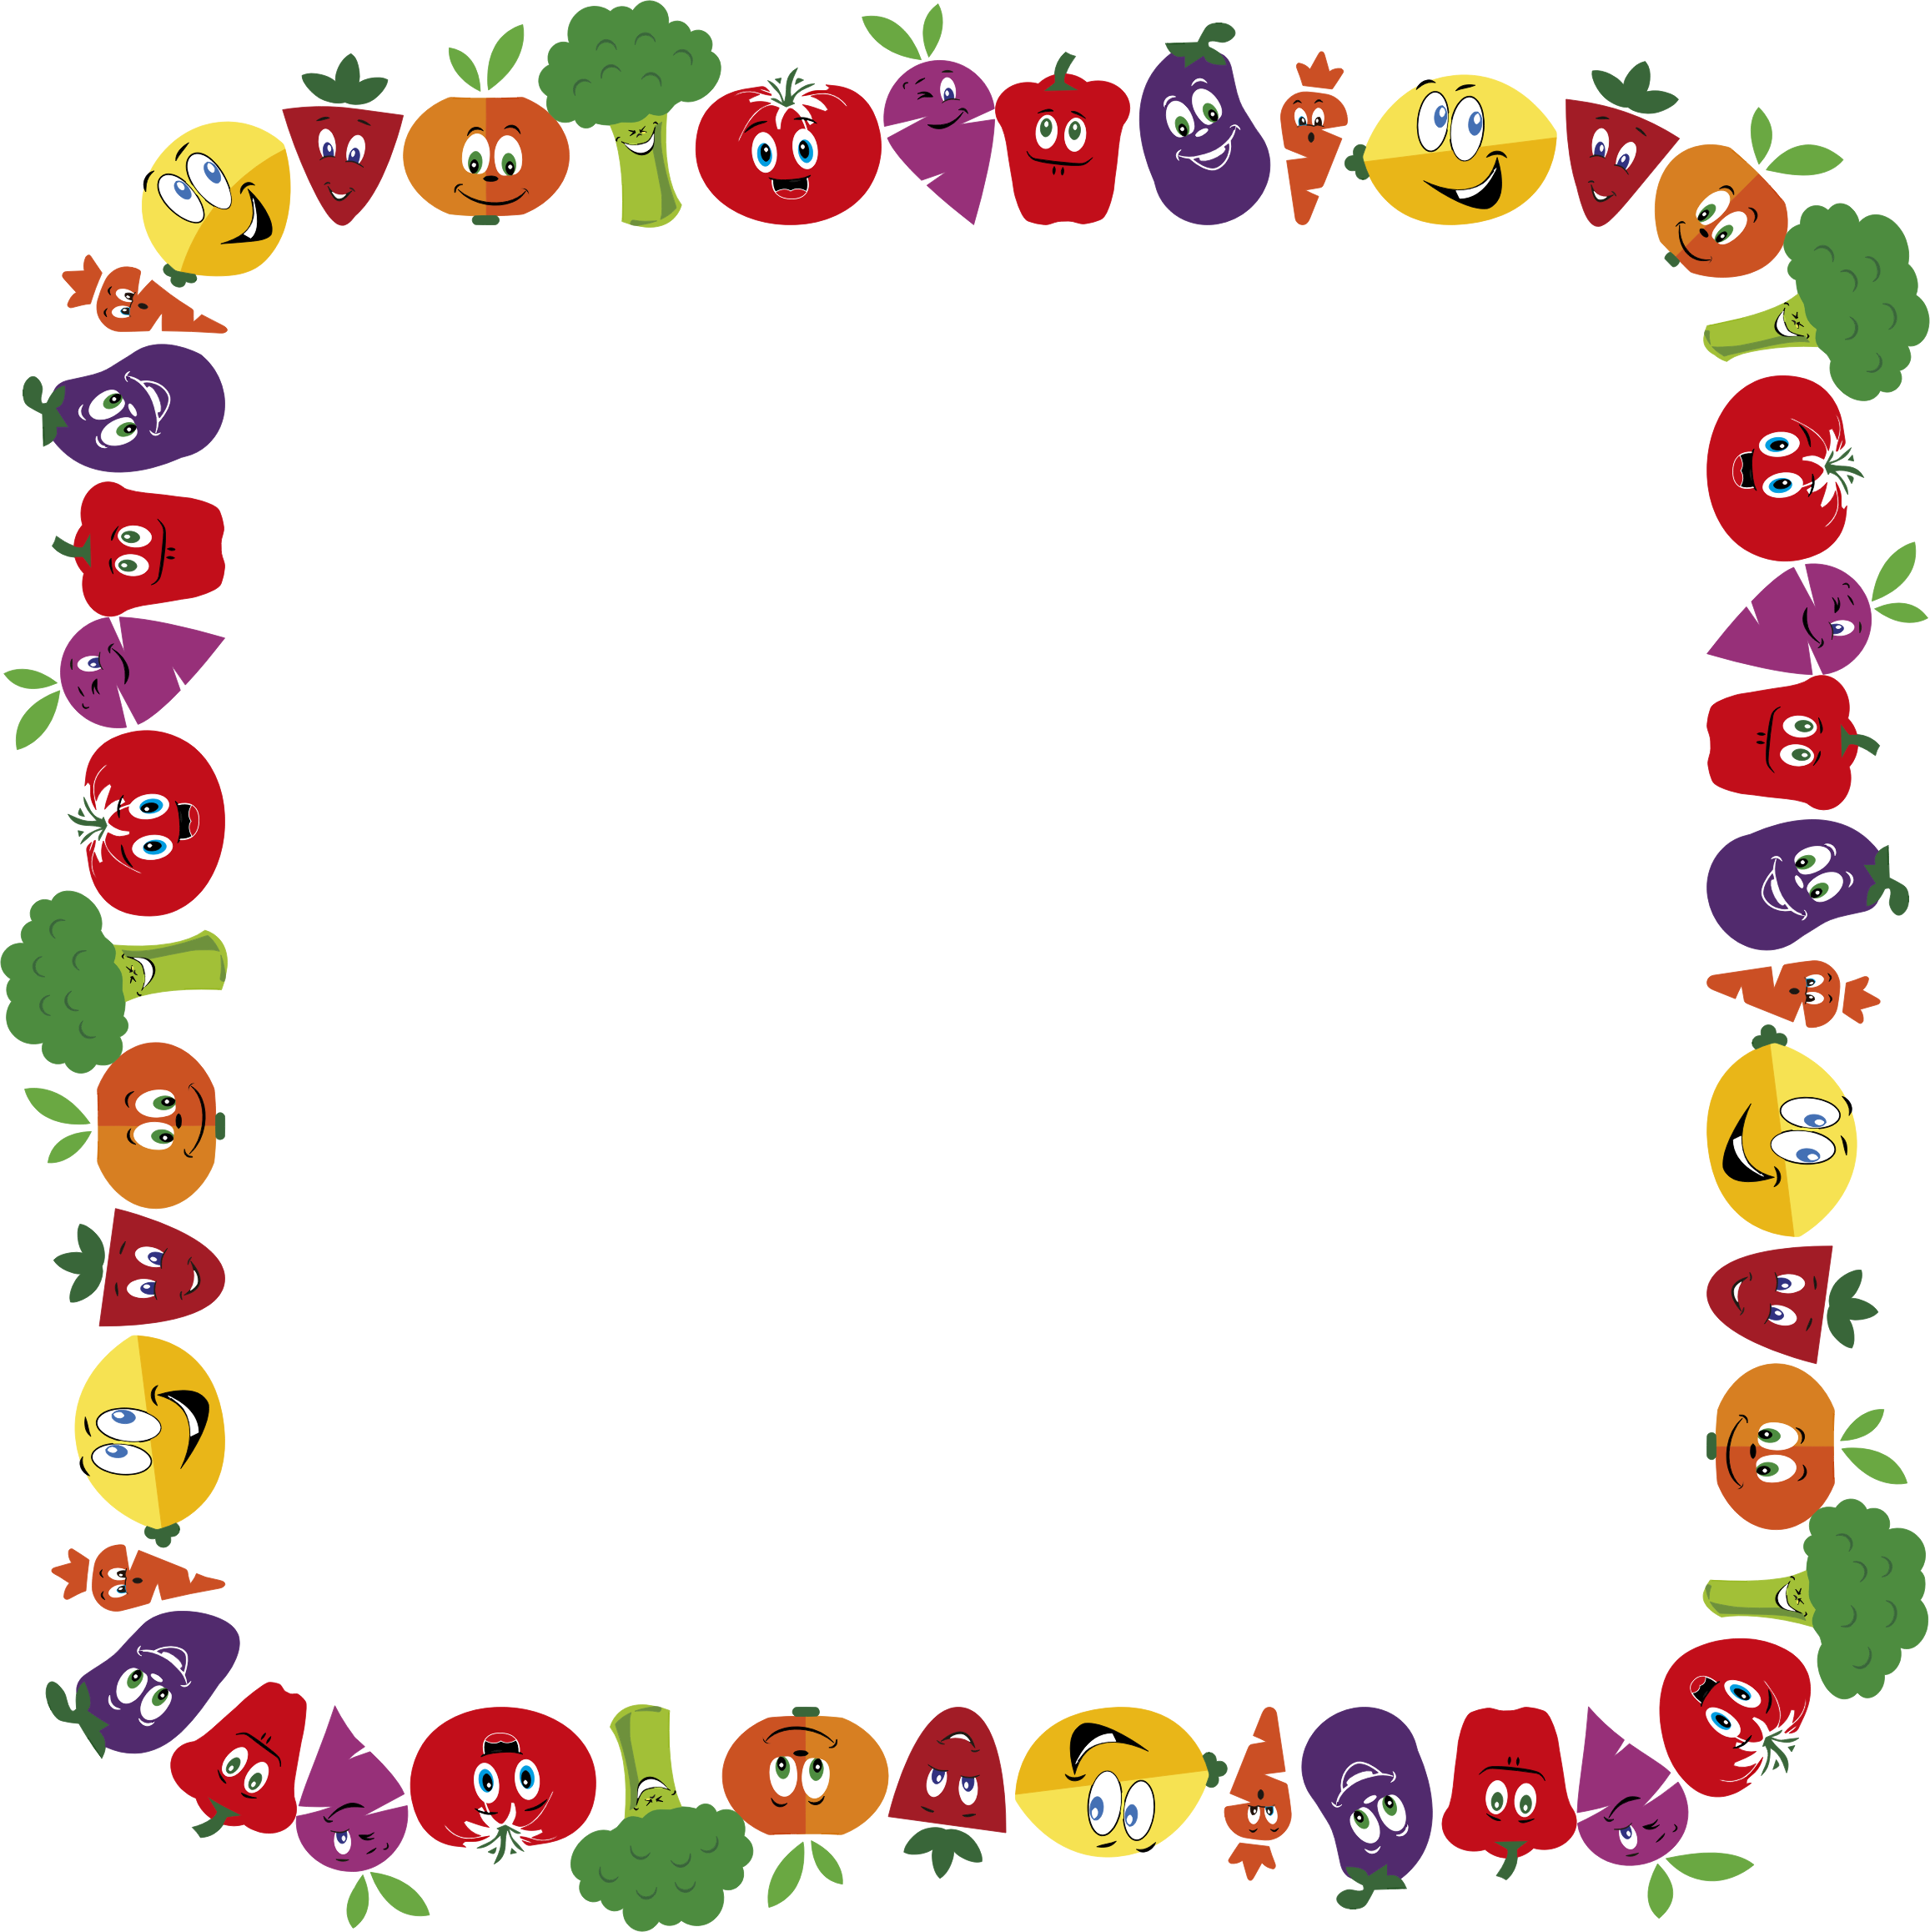 Vegetables clipart boarder. Anthropomorphic fruits and frame